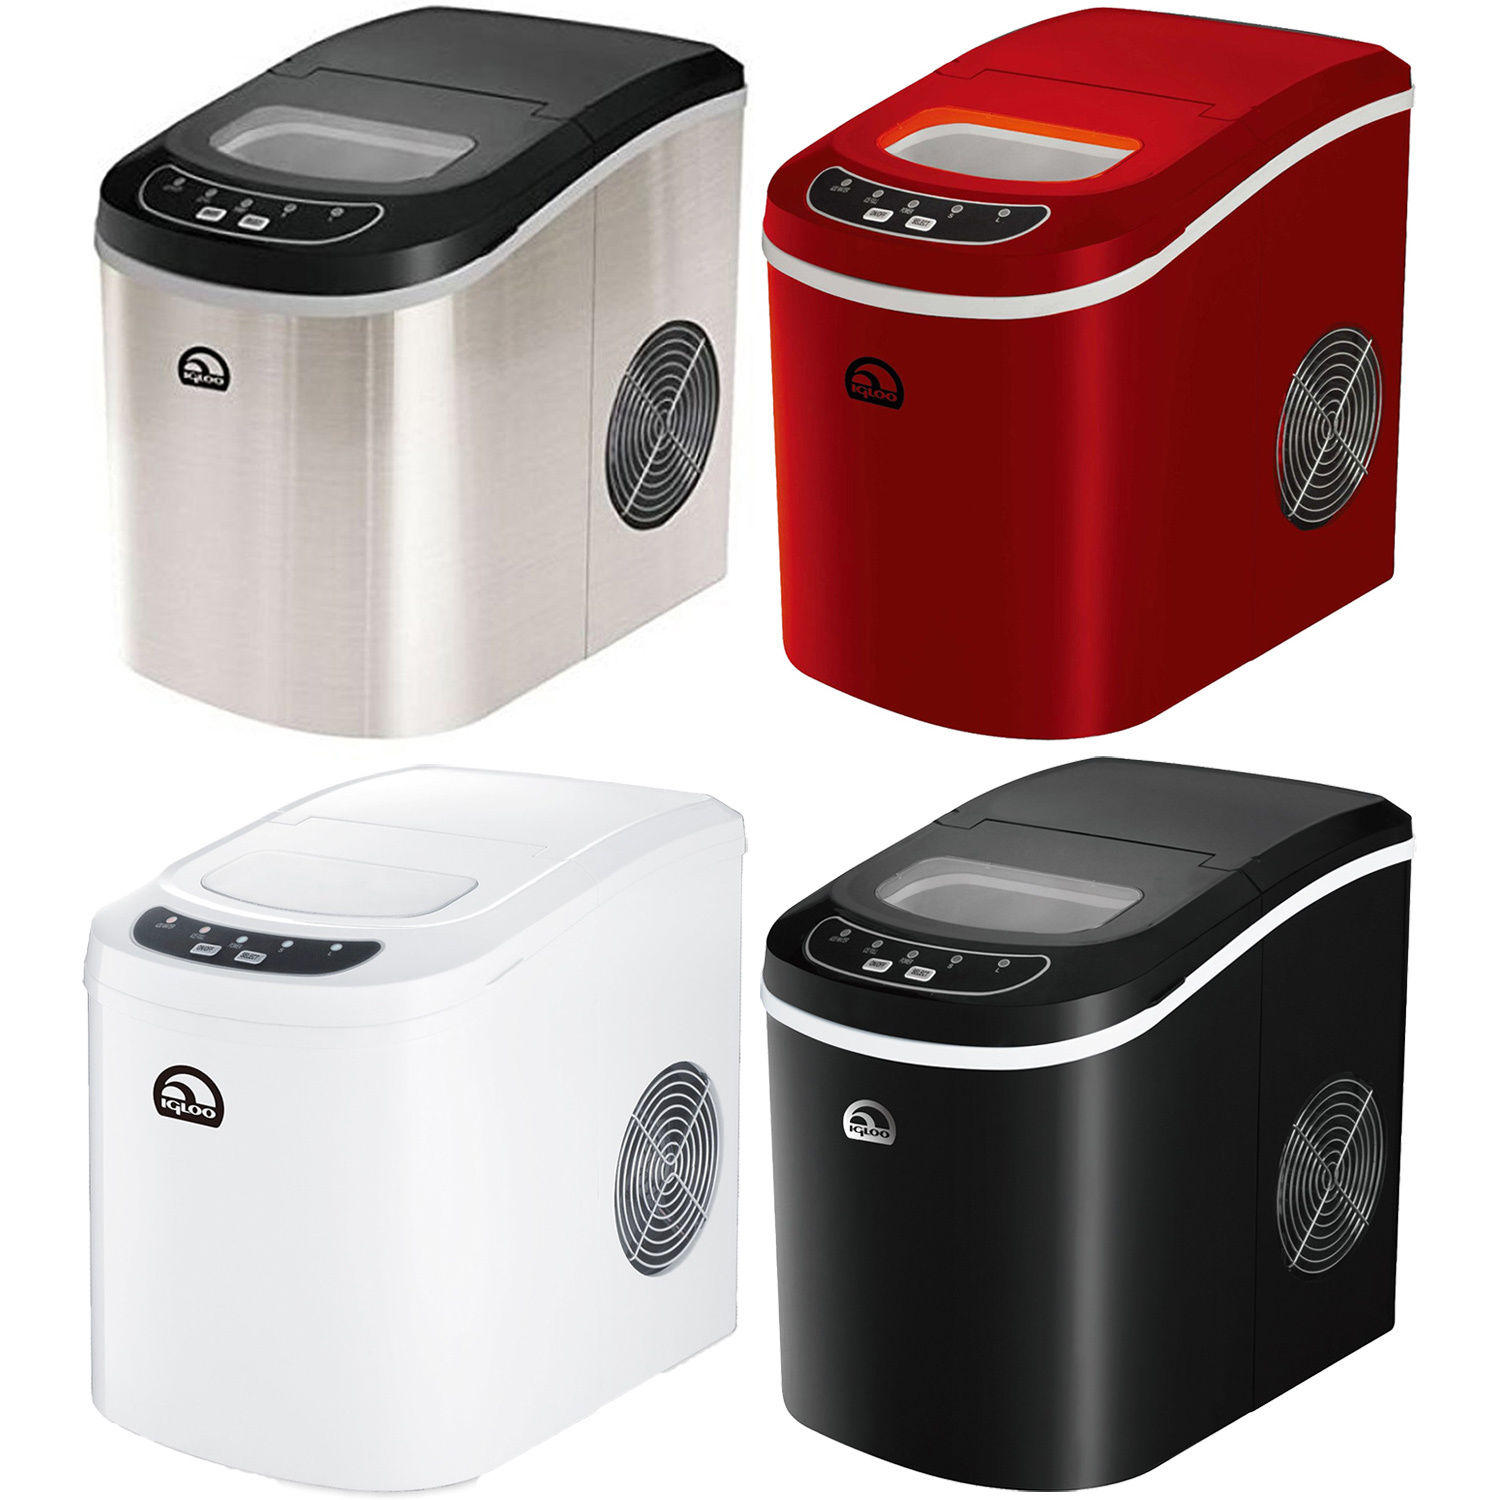 Igloo Compact Countertop Ice Maker